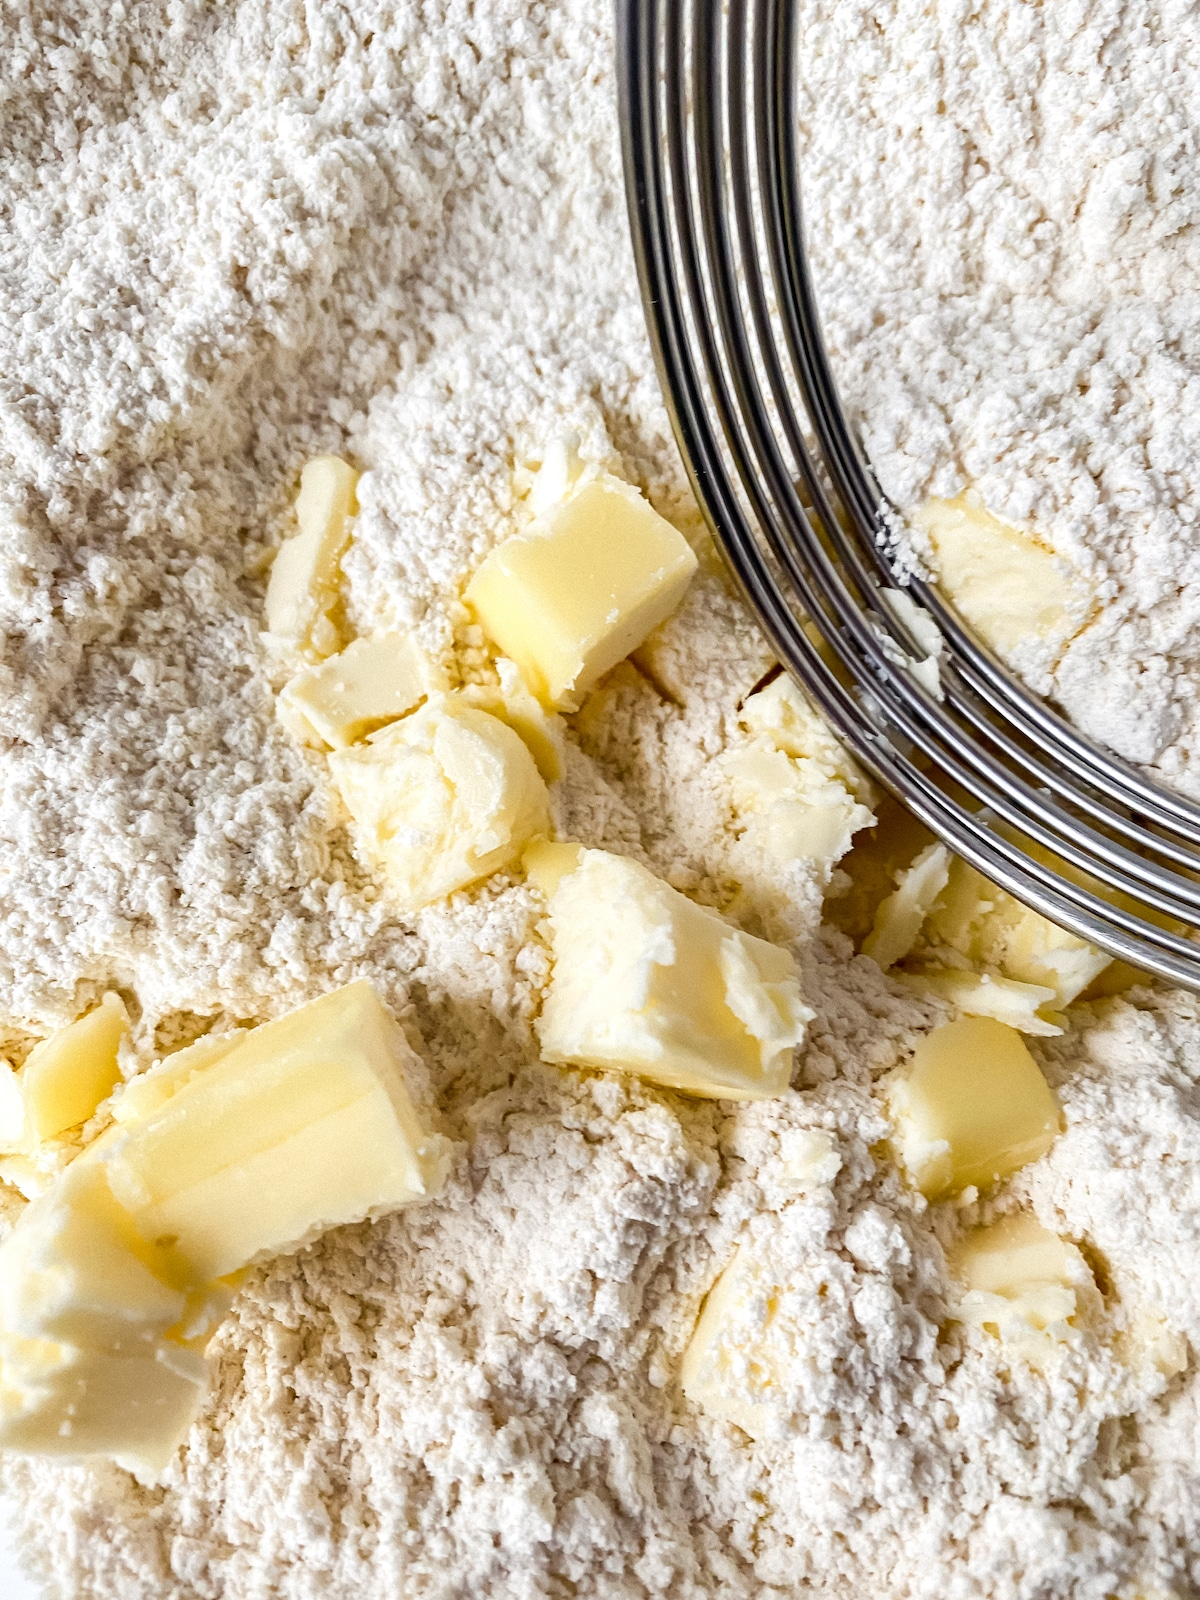 Flour in bowl with chunks of butter and pastry cutter